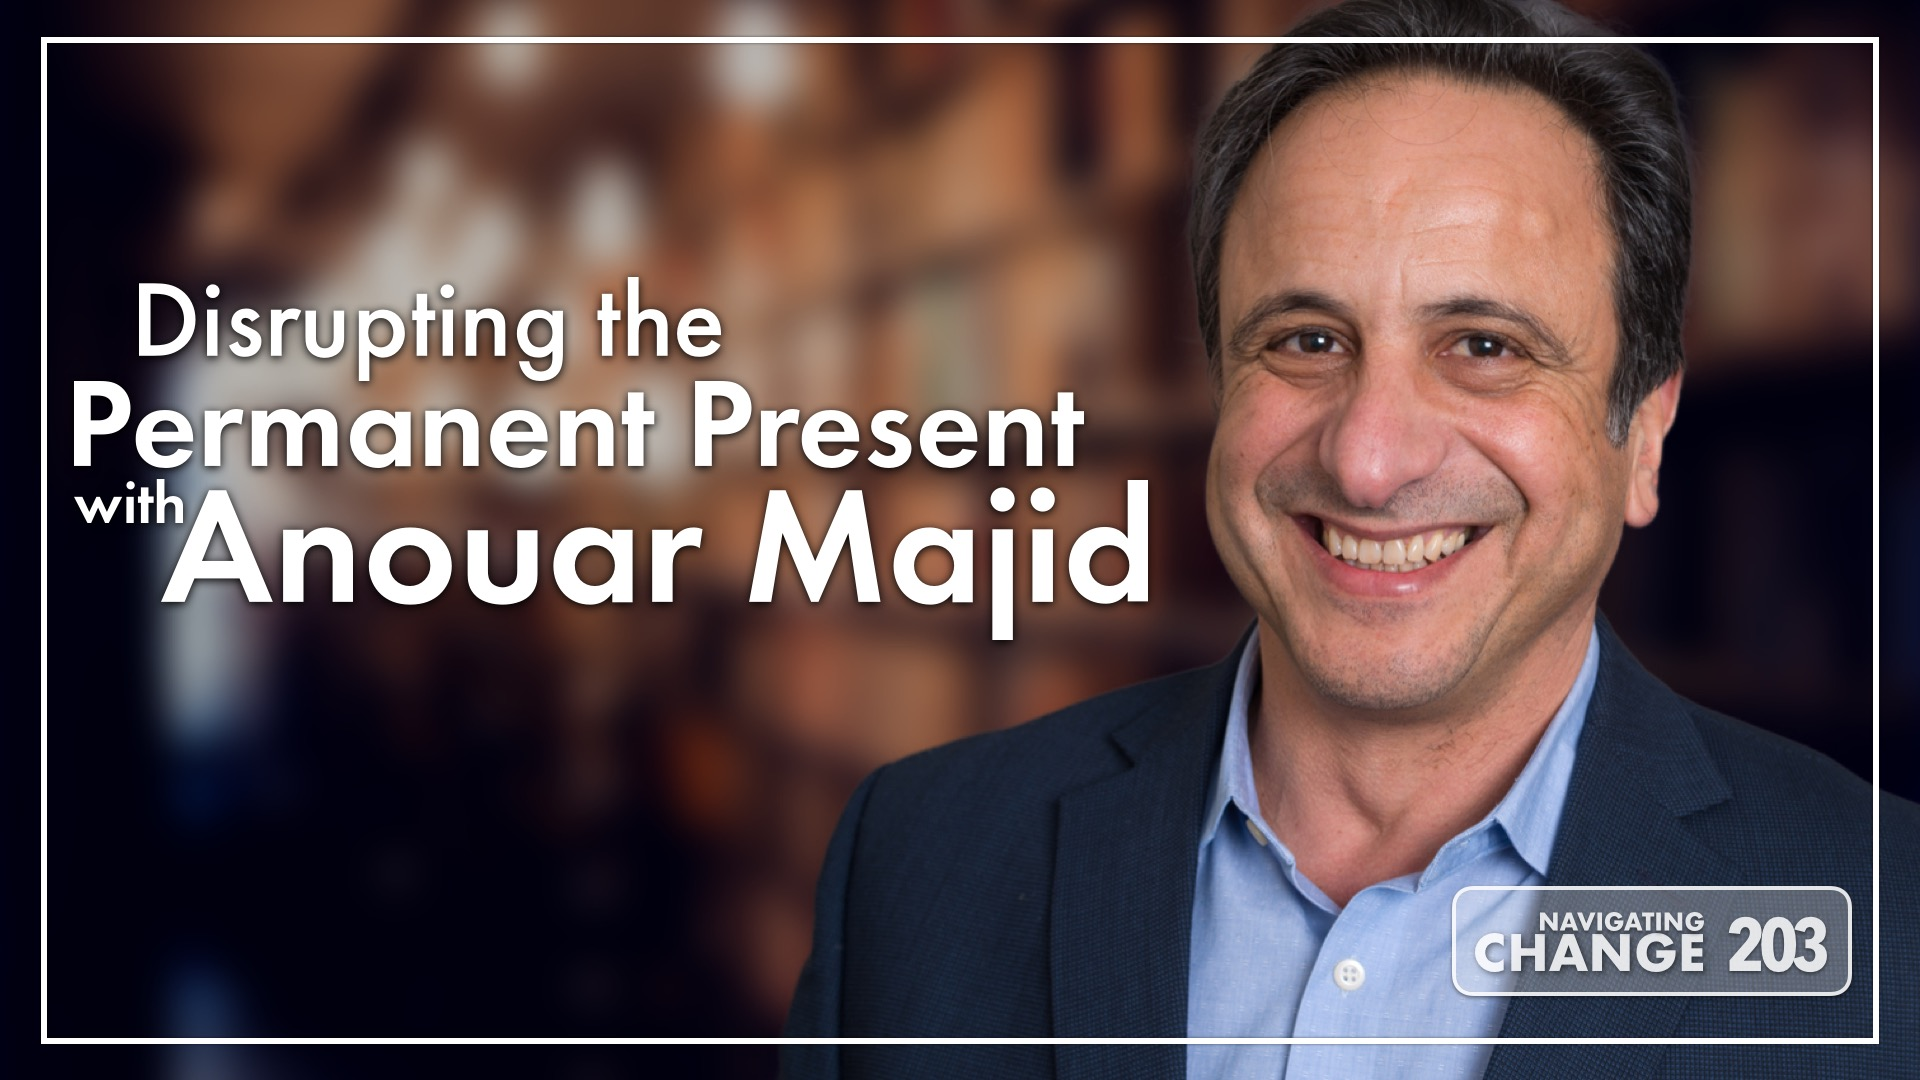 Disrupting the Permanent Present with Anouar Majid